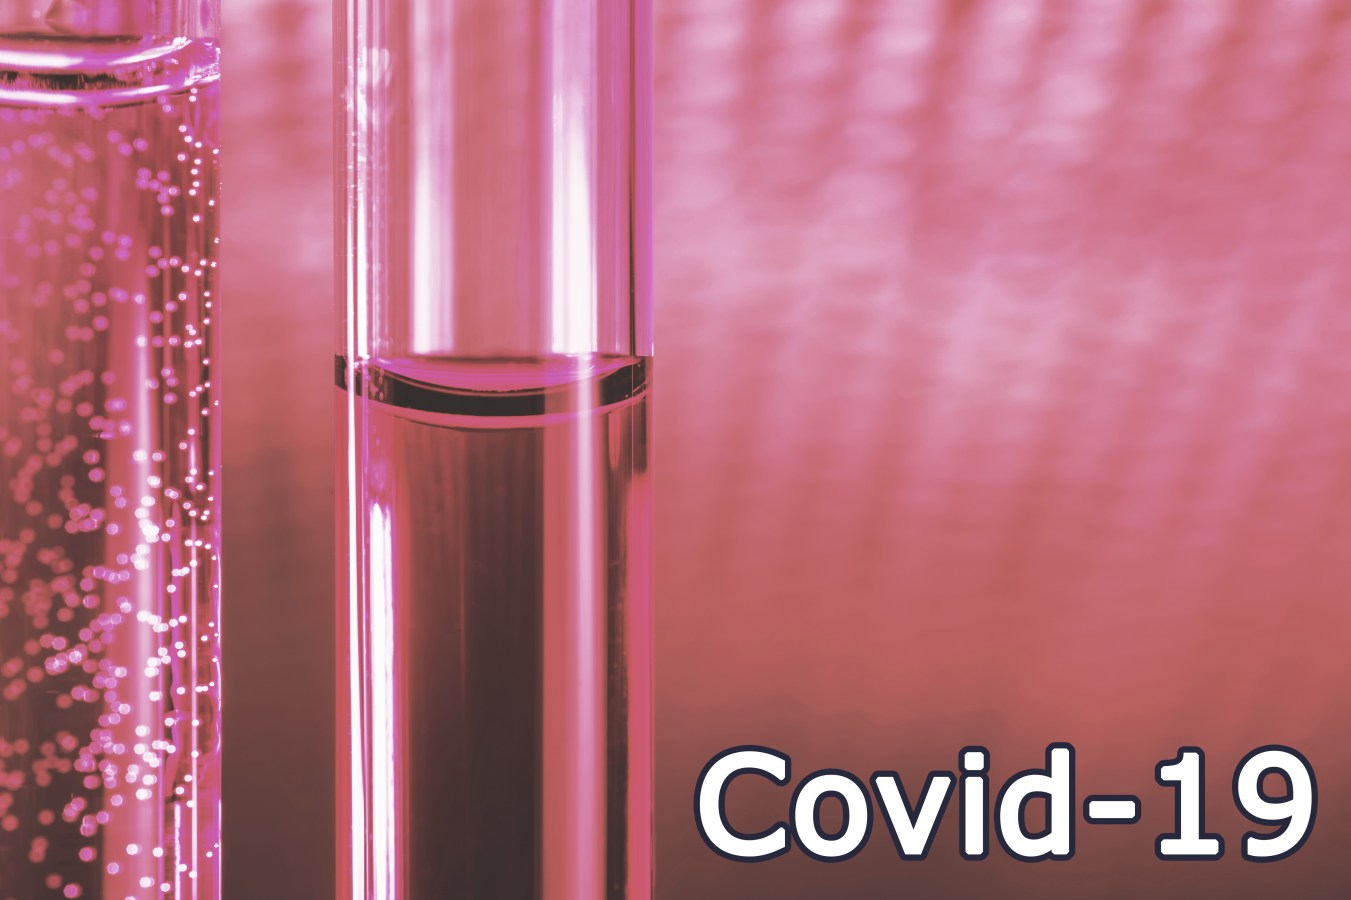 Covid-19. Red liquid vaccine in glass tubes.. Cases of COVID-19 illustration. Image credit: Ivan Uralsky